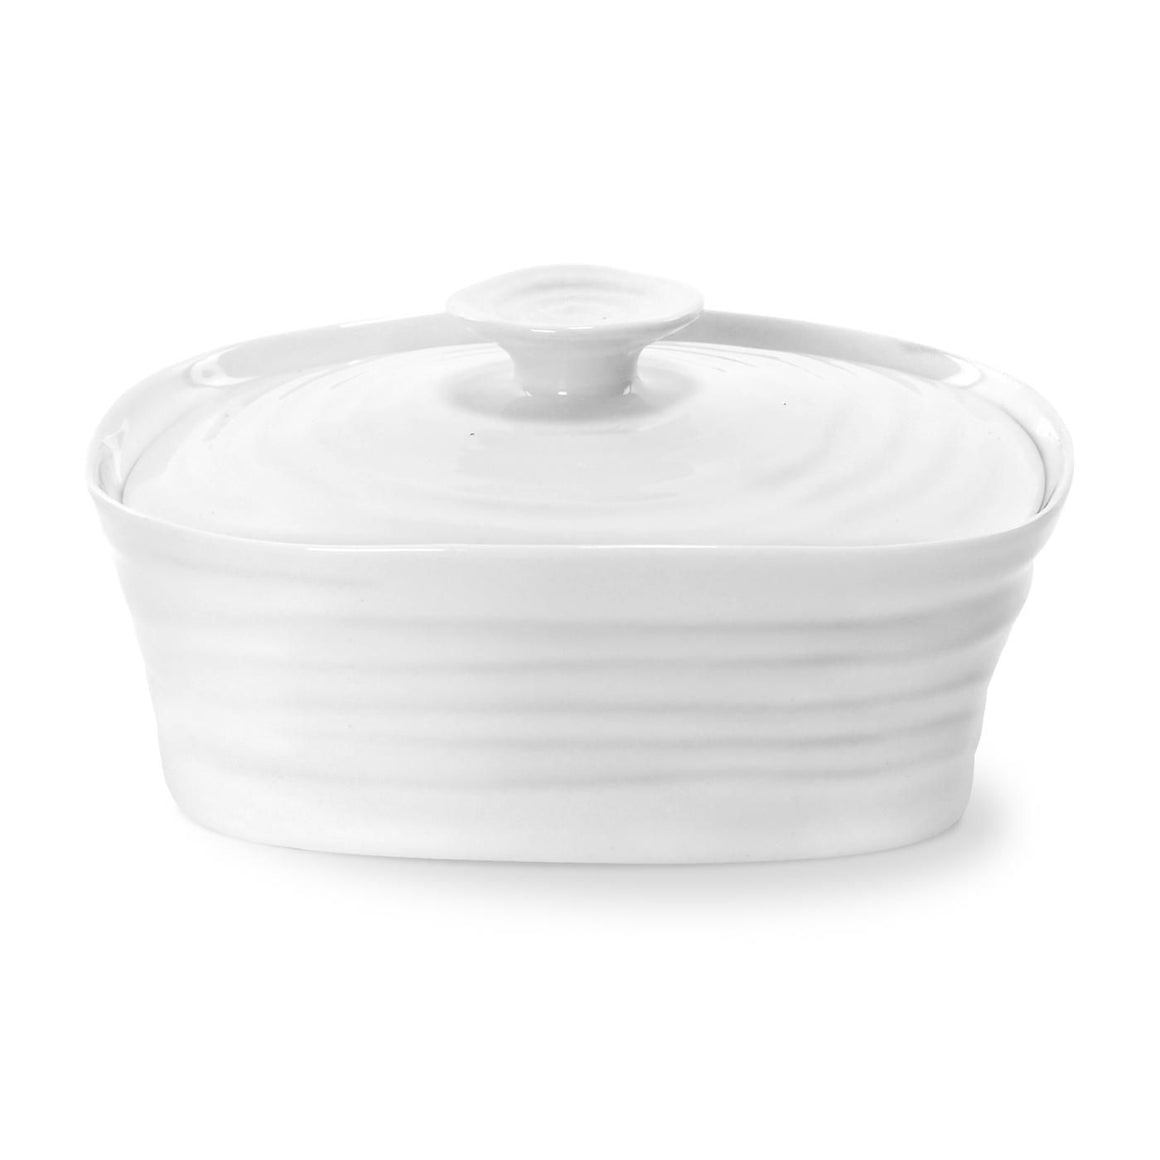 Sophie Conran Covered Butter Dish